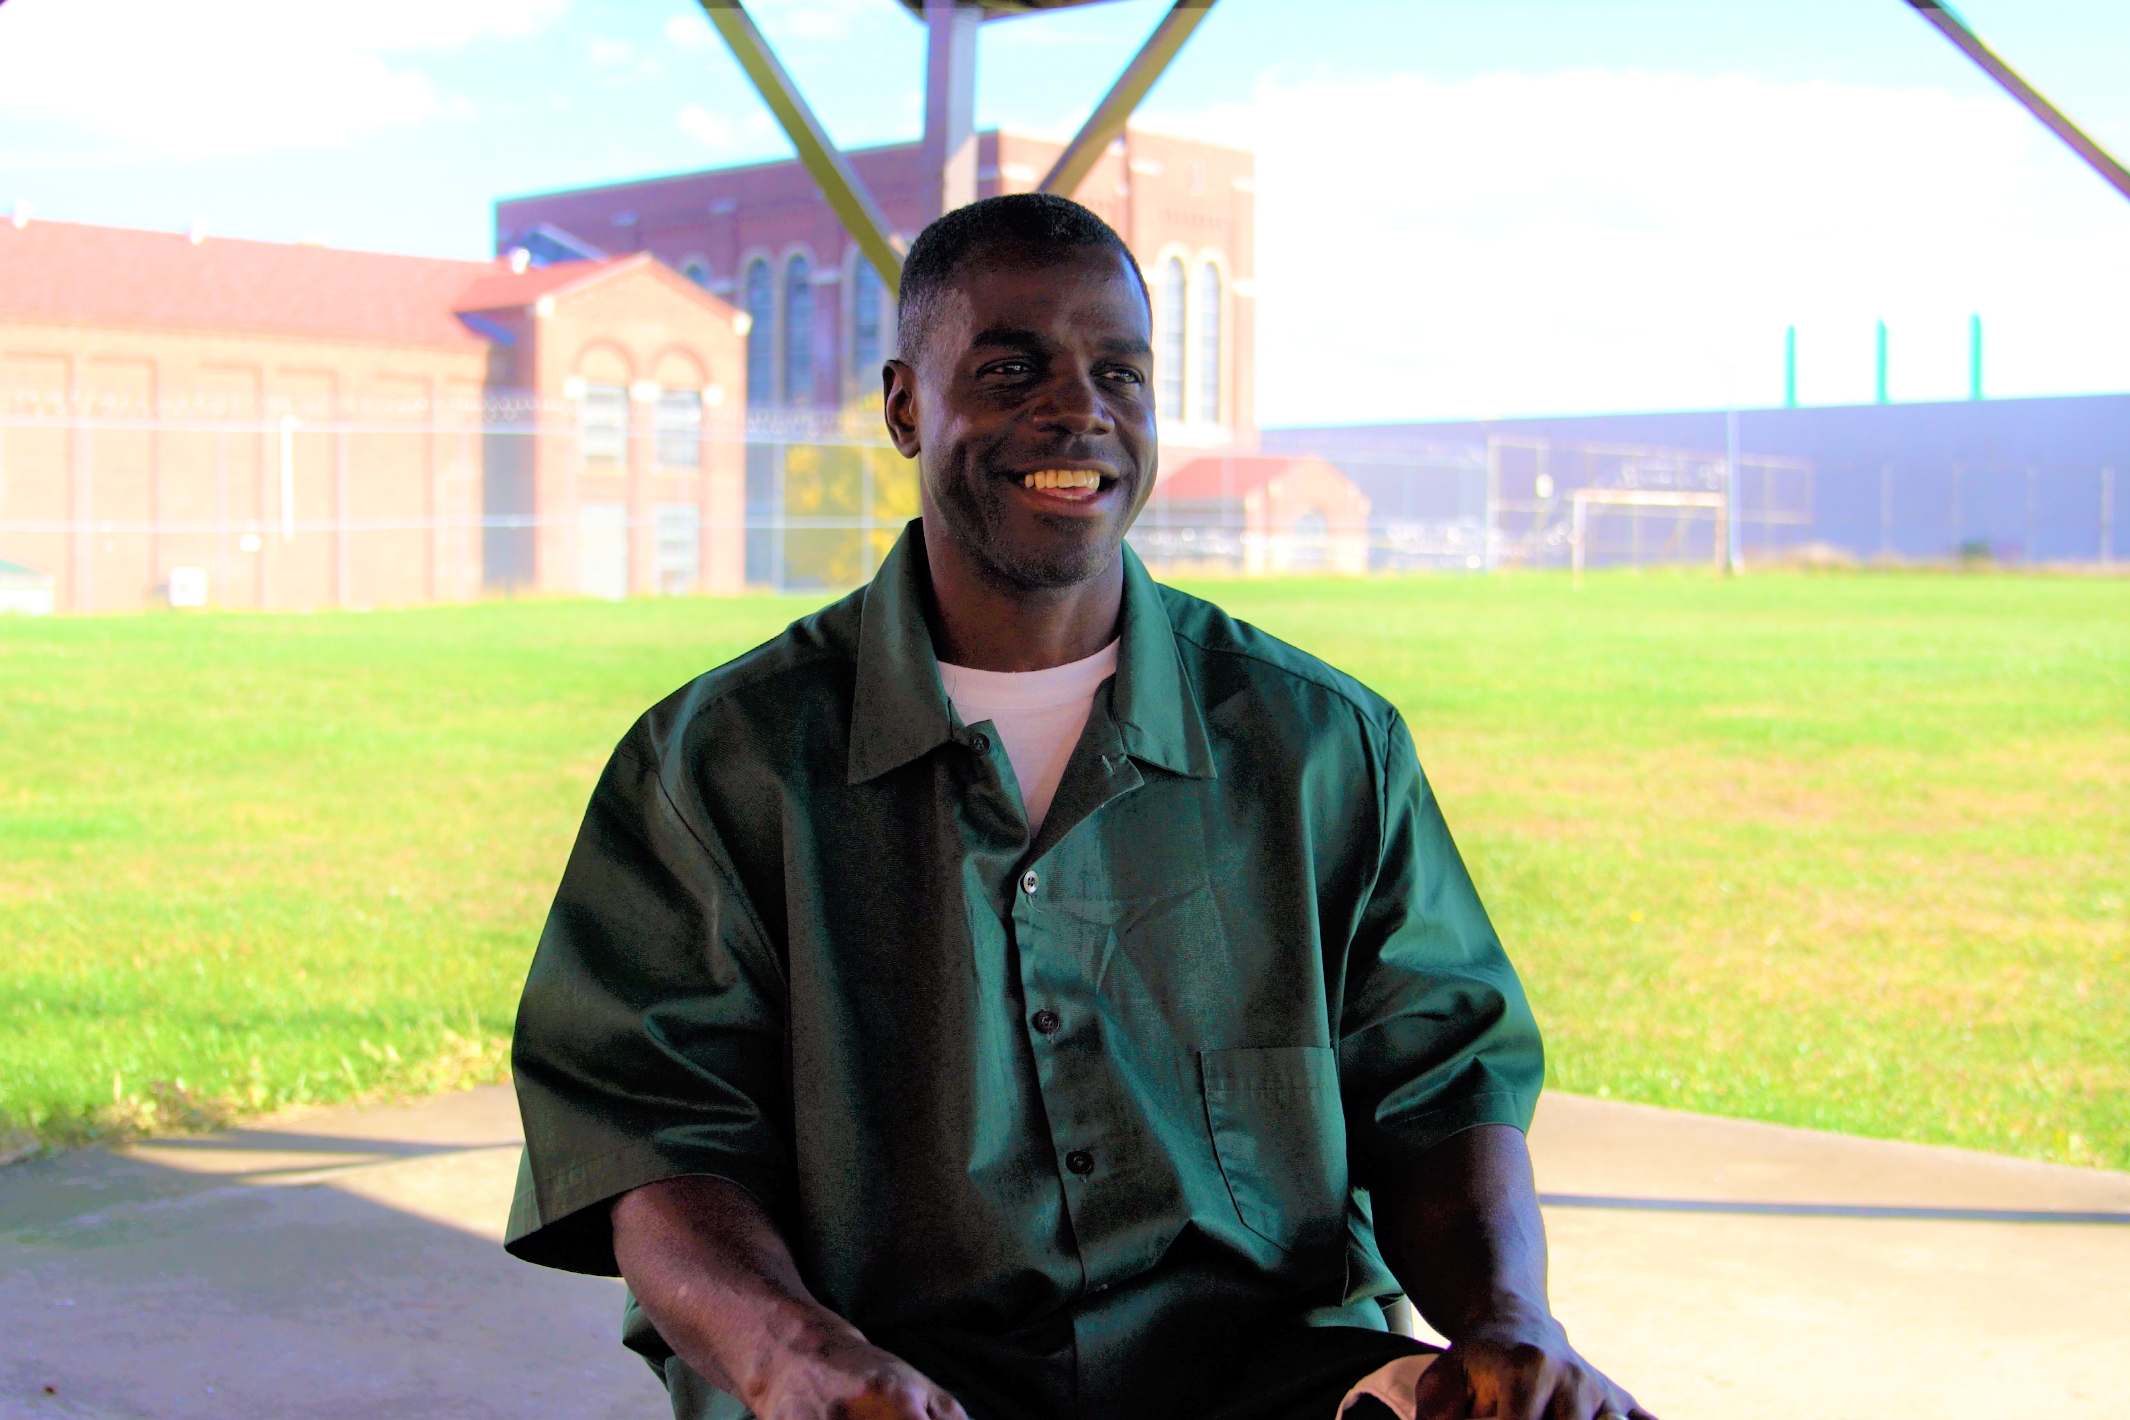 Frank Pruitt has been behind bars for 31 years, during which time he has gotten married and confronted childhood trauma.